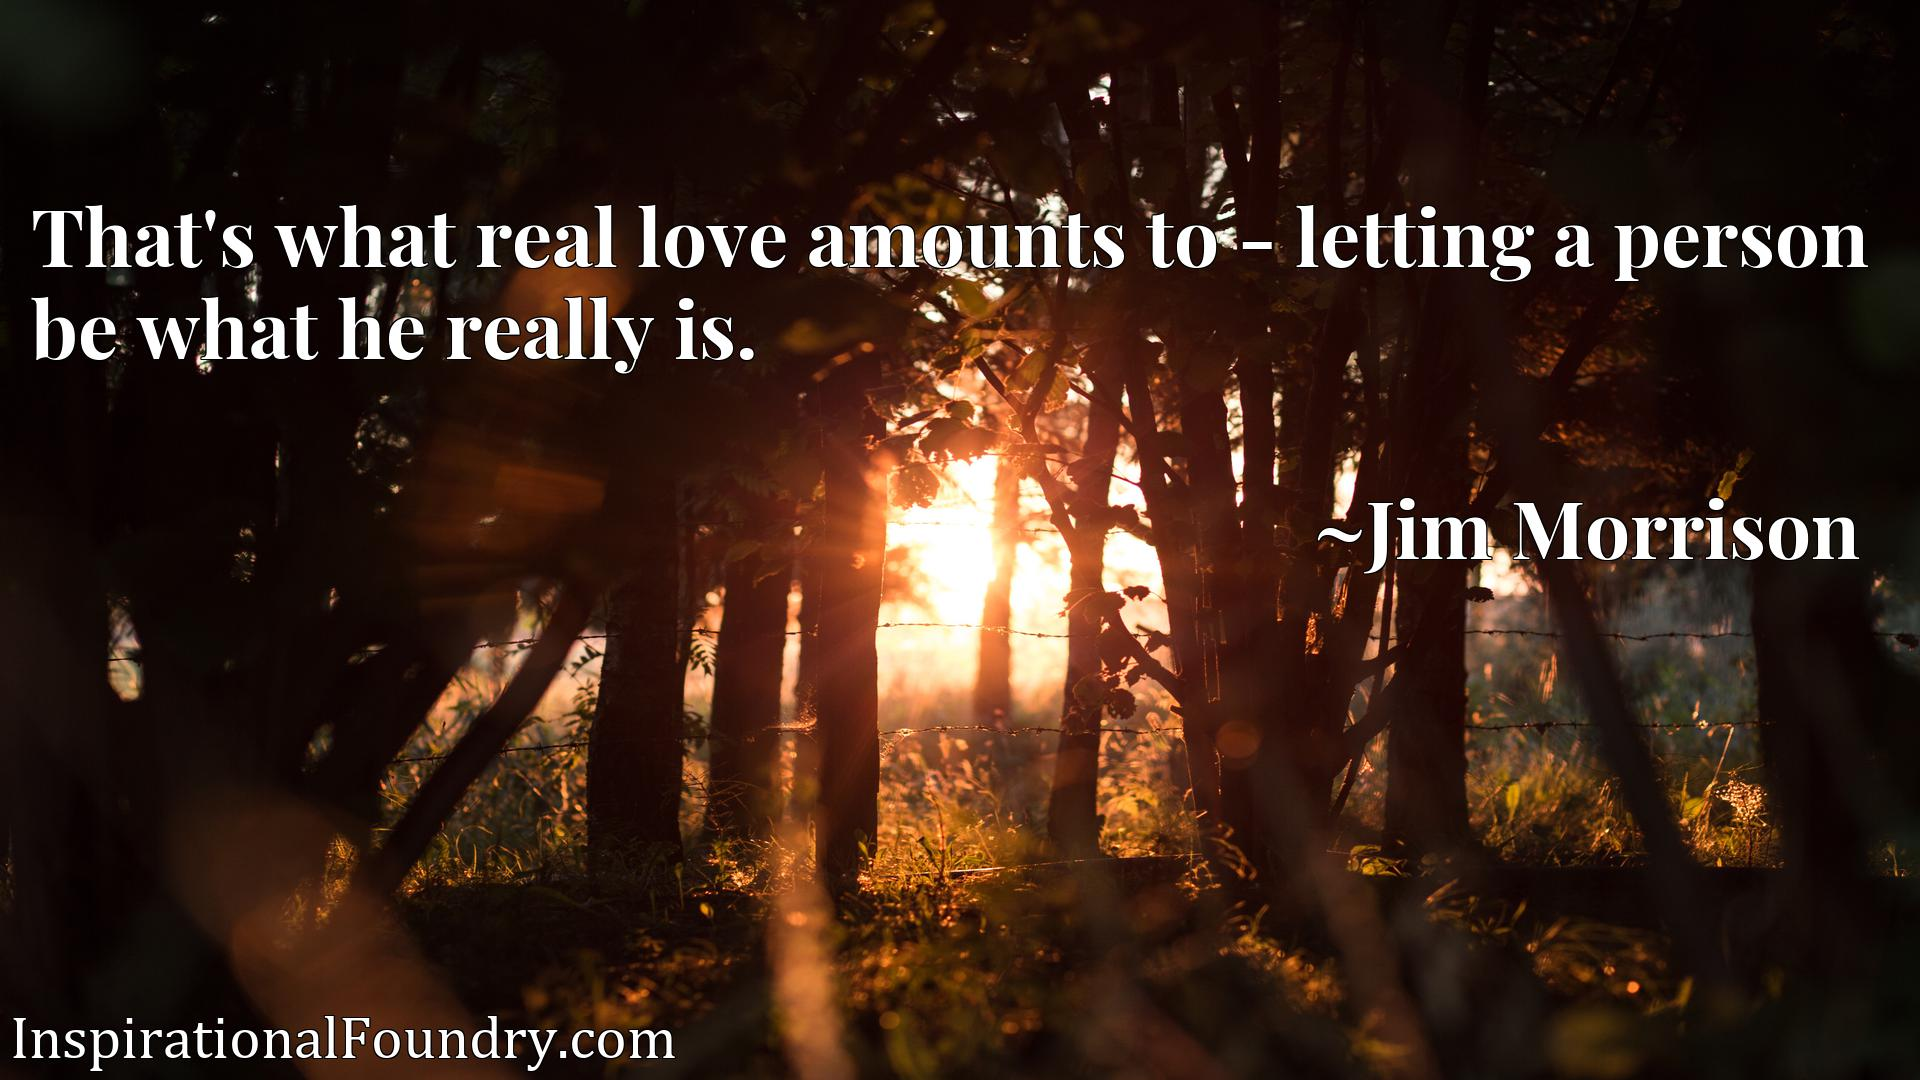 Quote Picture :That's what real love amounts to - letting a person be what he really is.